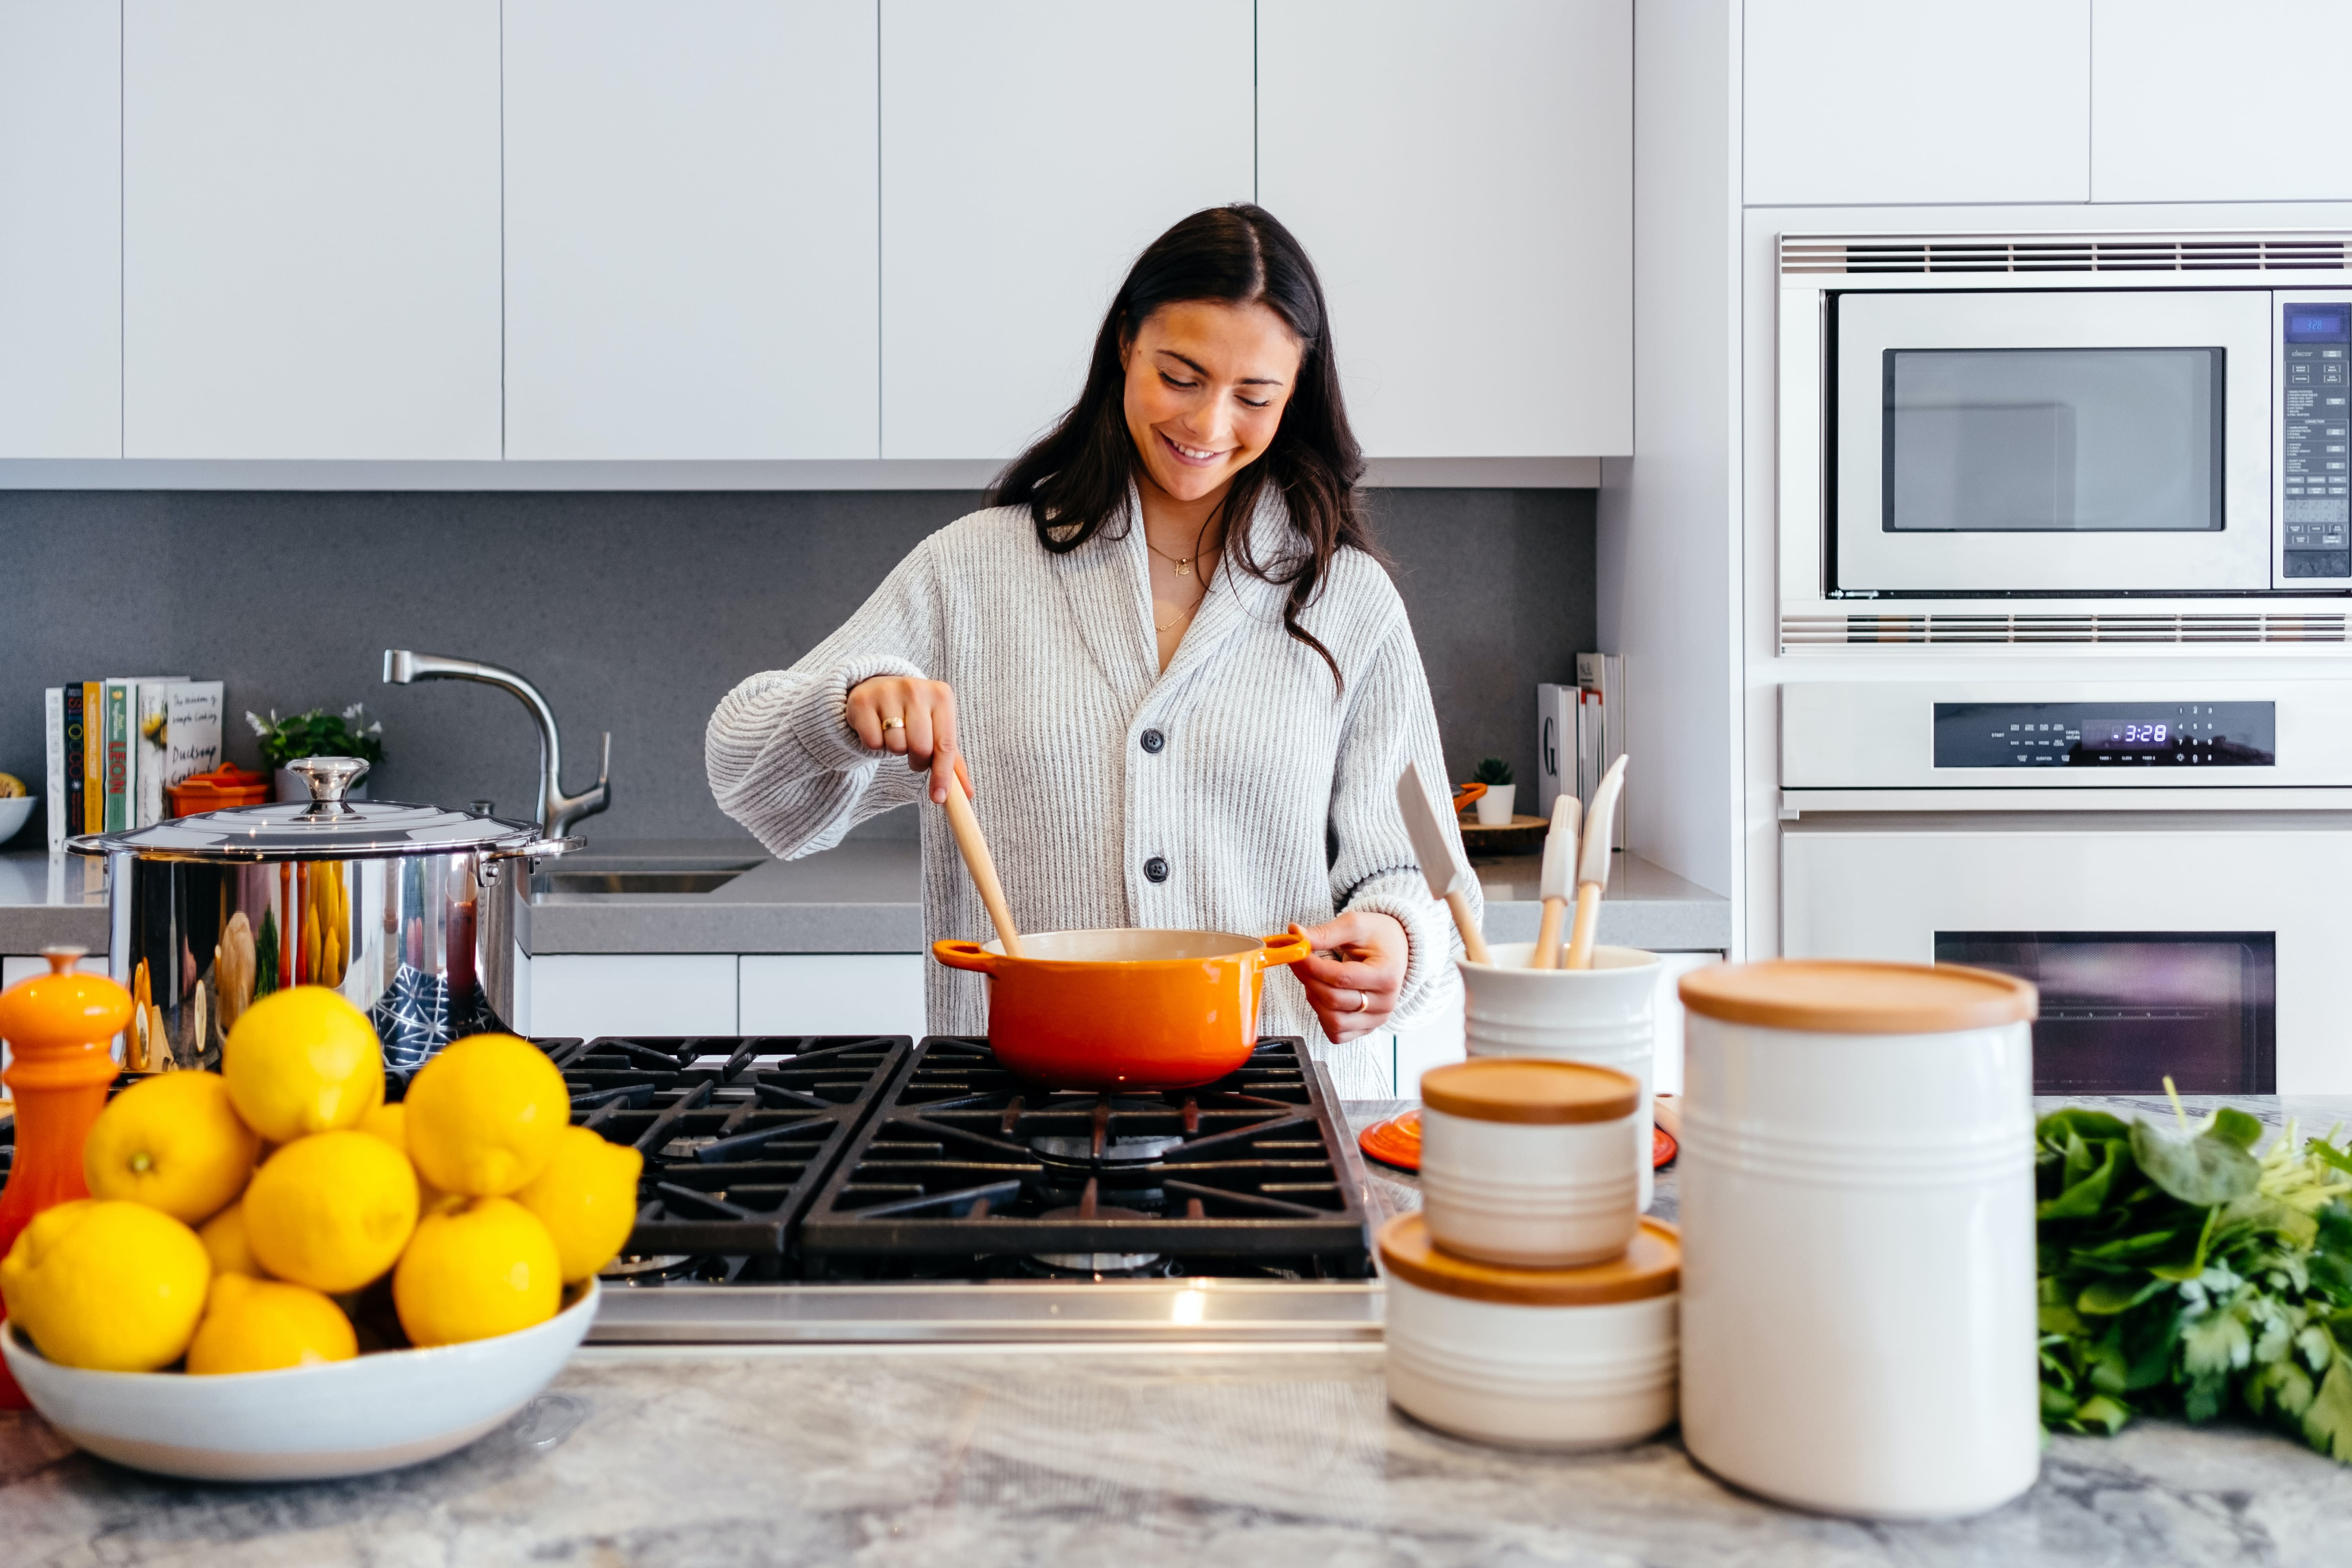 Top Gadgets for Your Kitchen